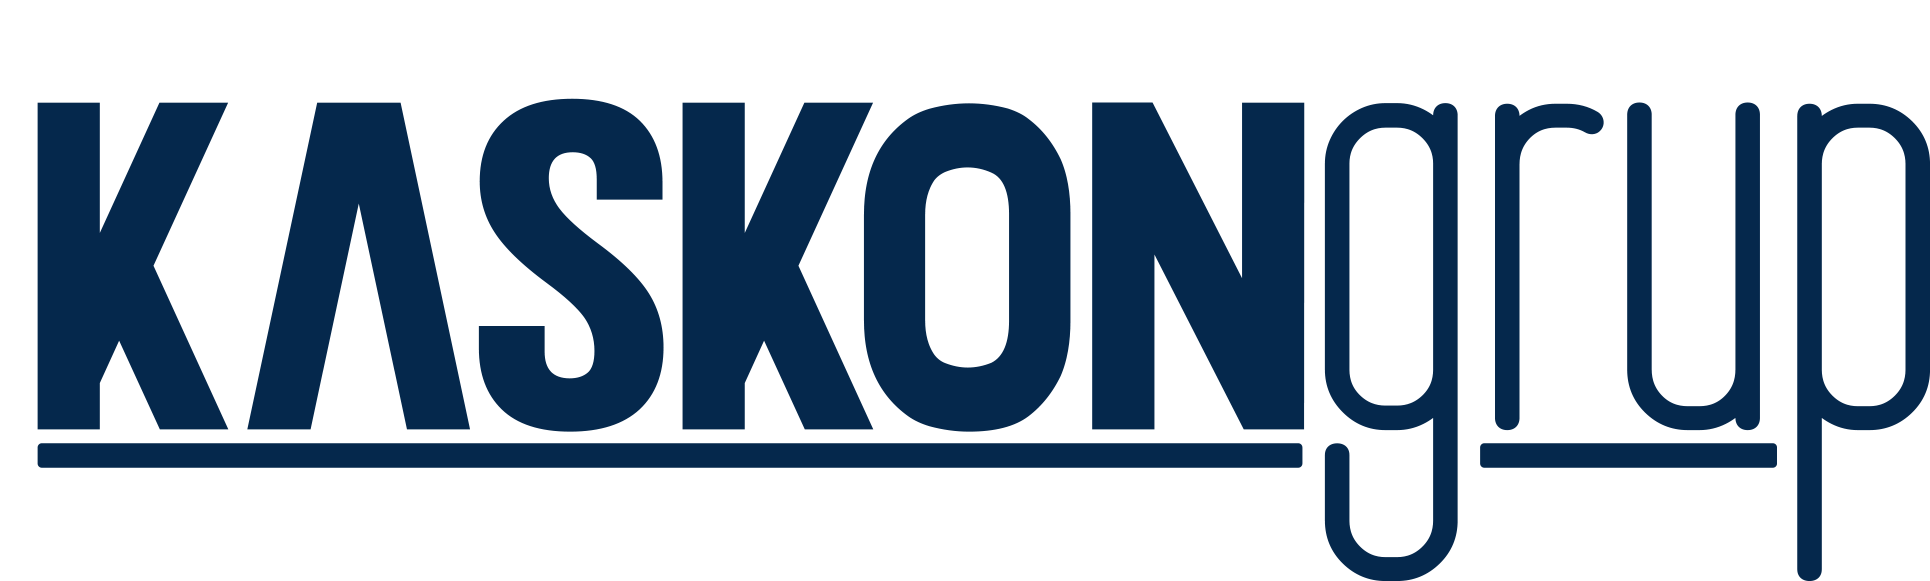 Kaskon Website Template